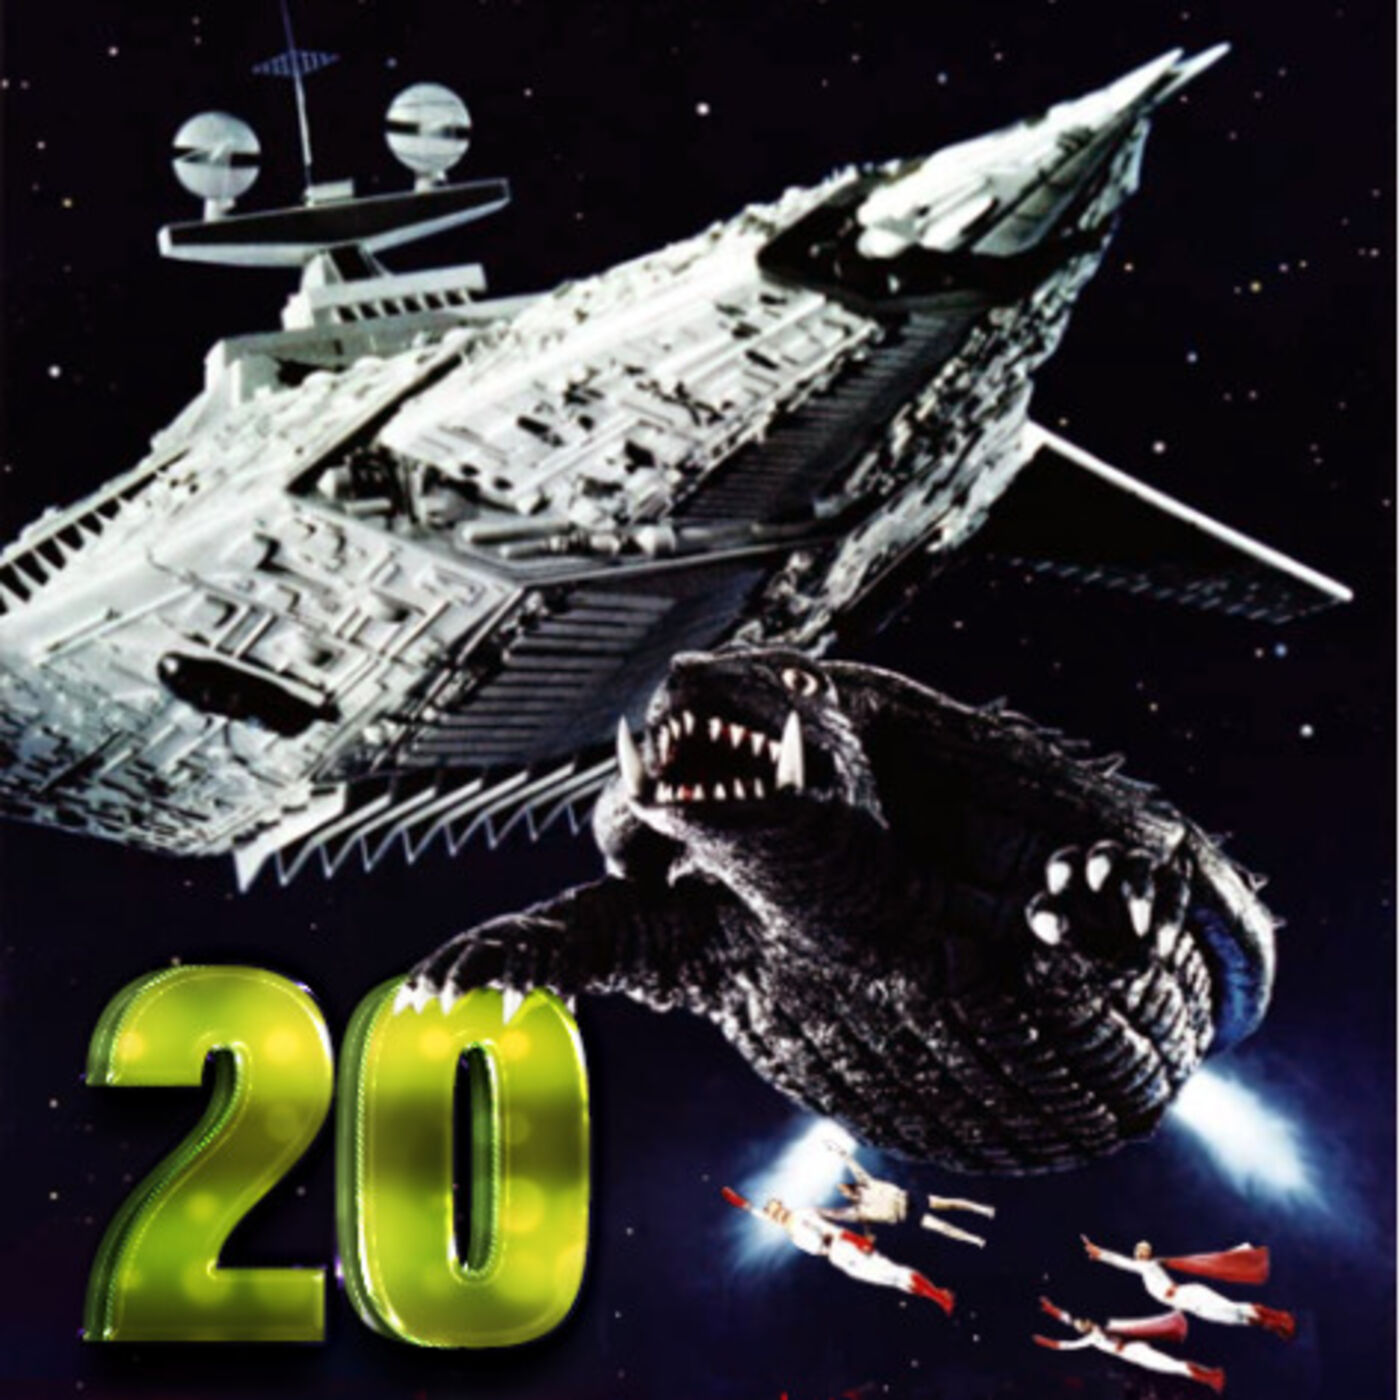 Ep 20 - Inexplicable Trains in Space (Gamera: Super Monster)